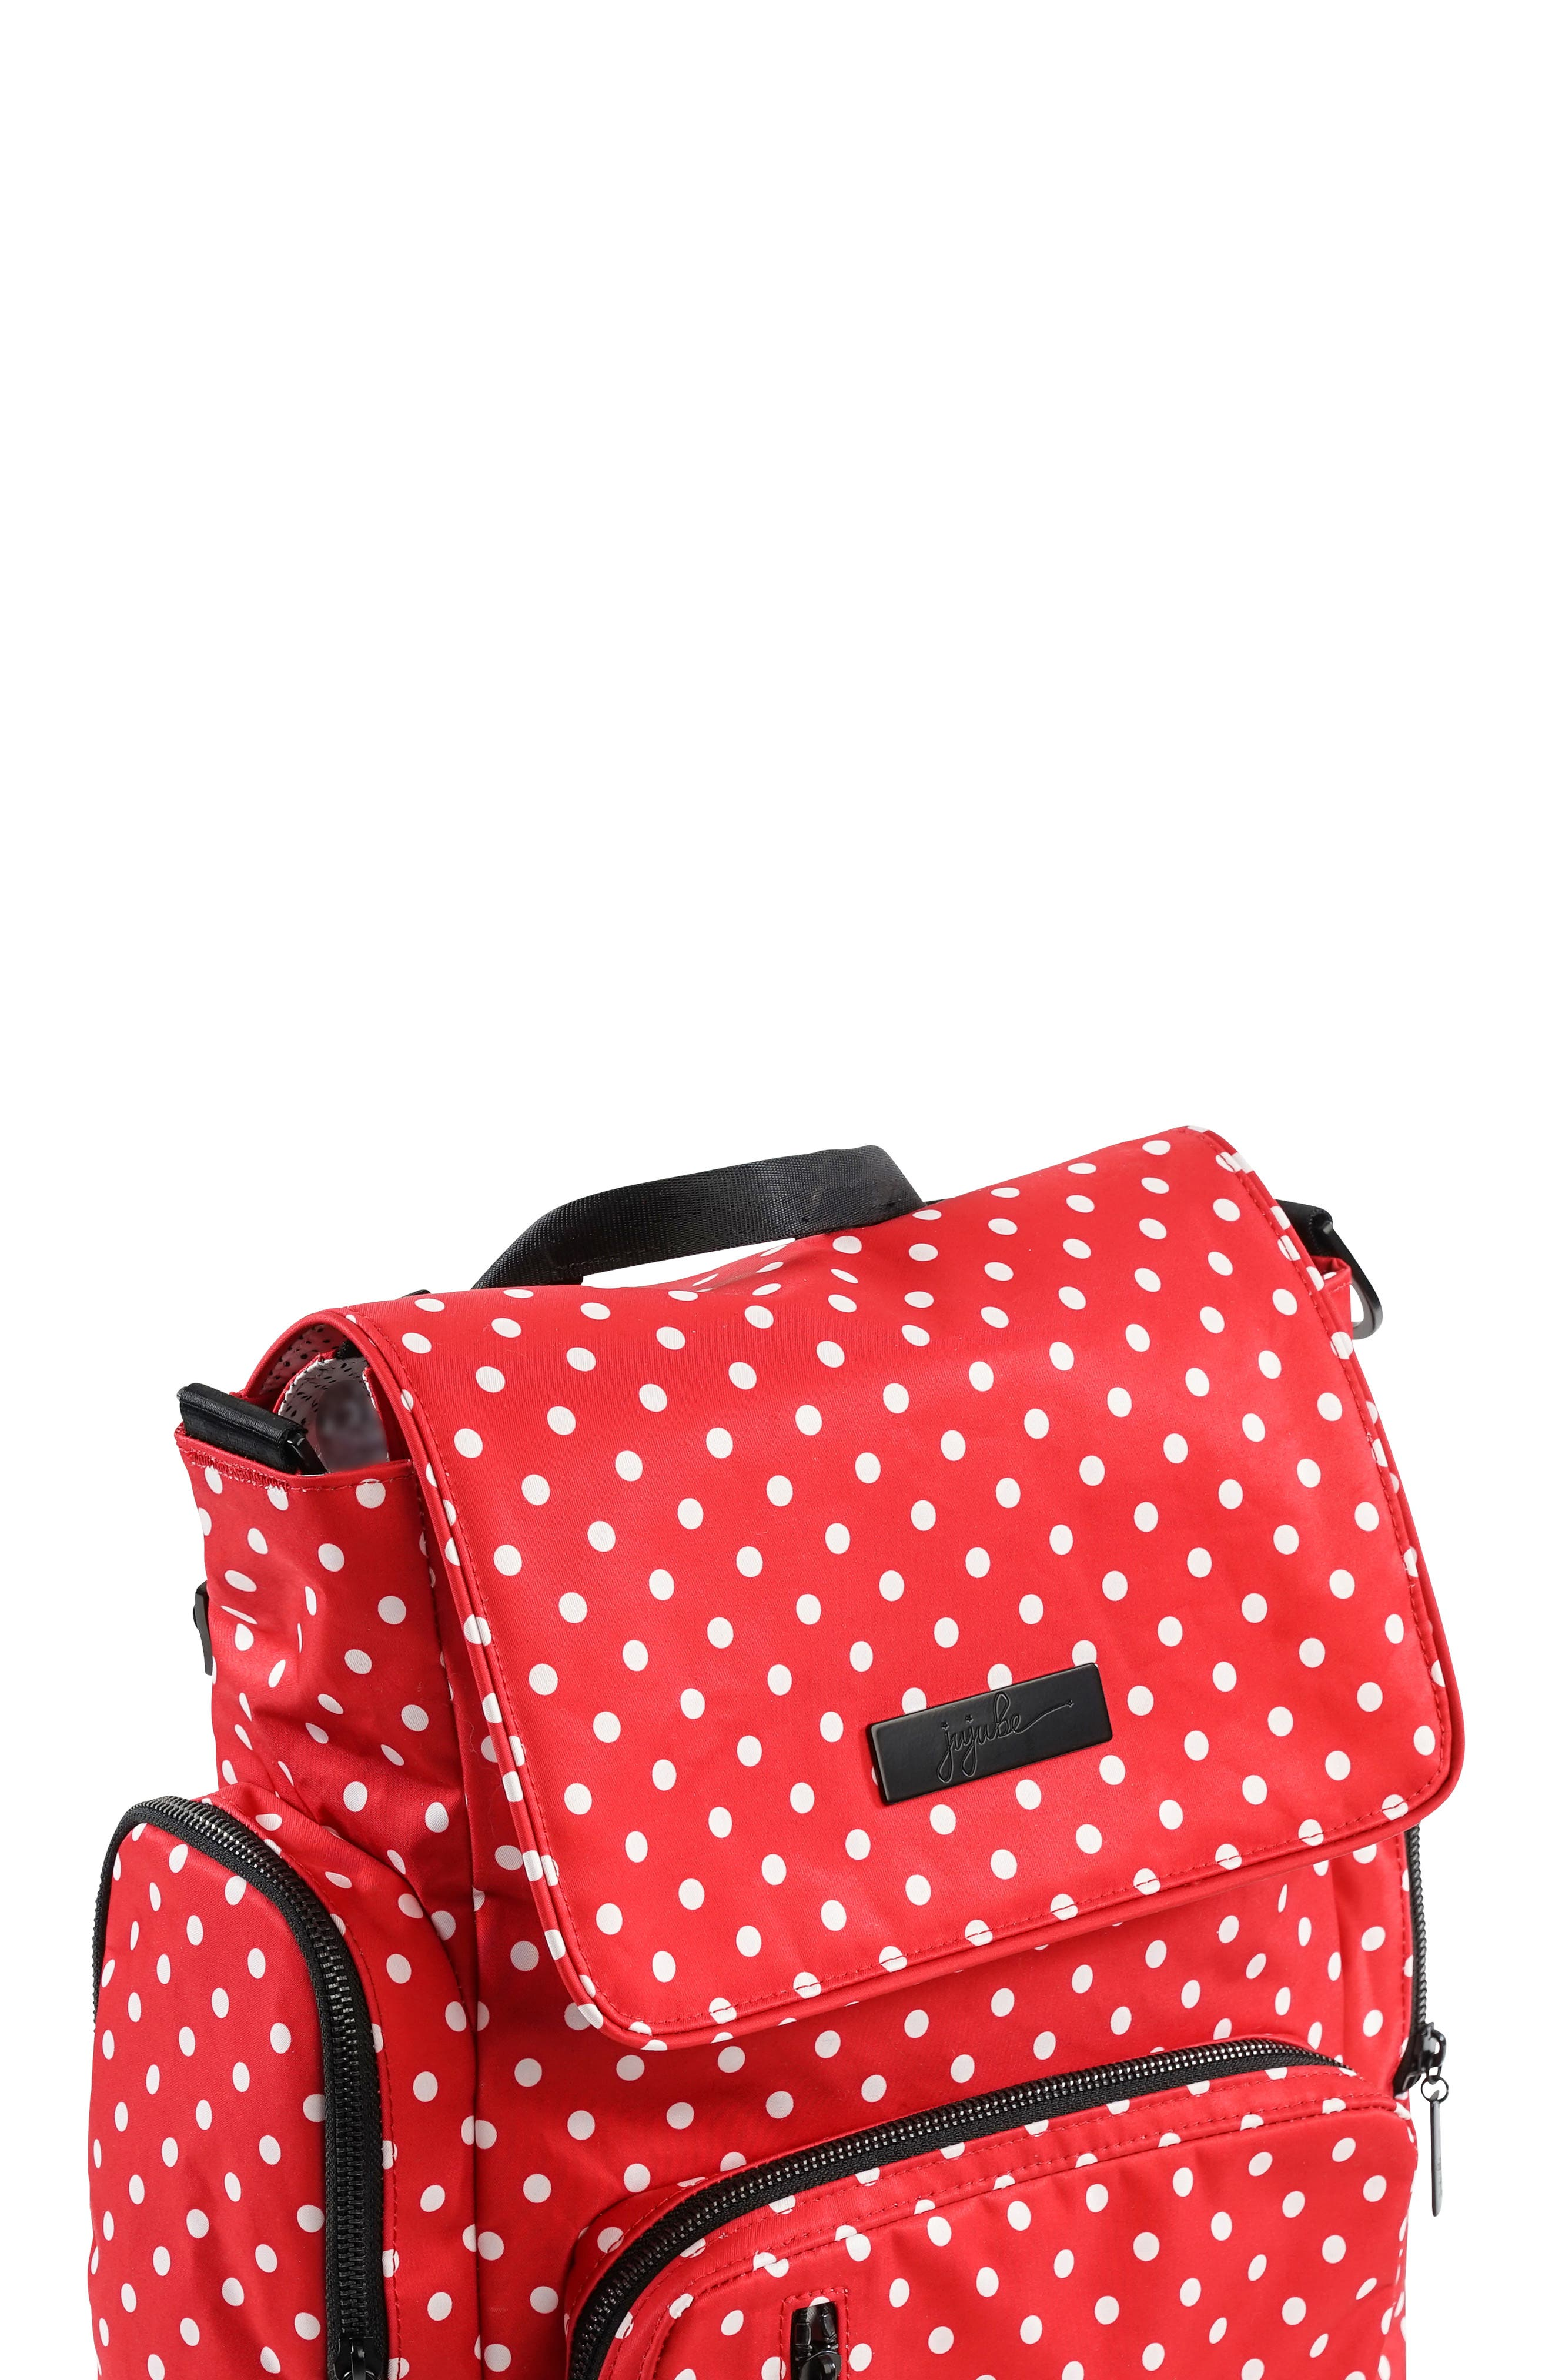 Onyx Be Sporty Diaper Backpack,                             Alternate thumbnail 4, color,                             BLACK RUBY